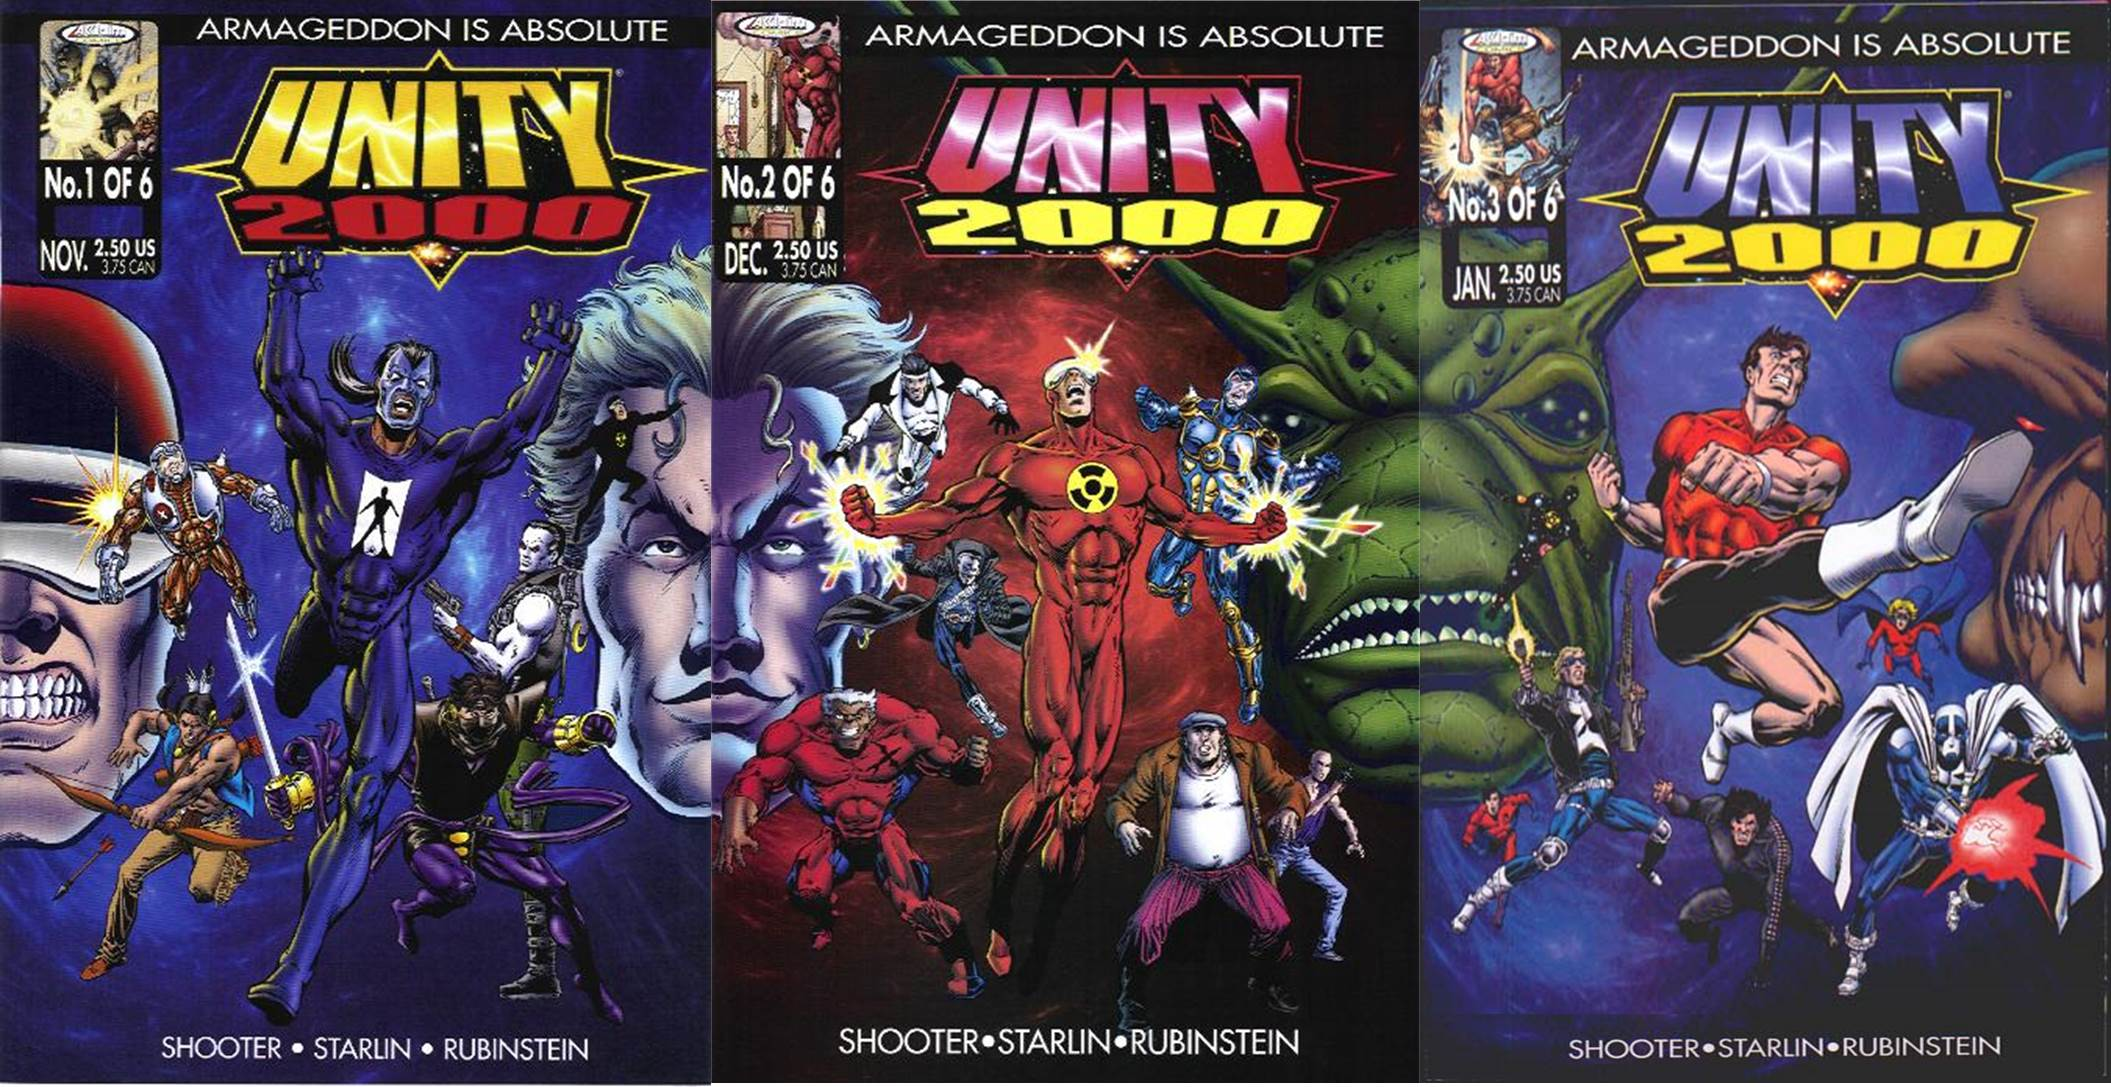 Unity-2000-by-Acclaim-1-2-3-Valiant